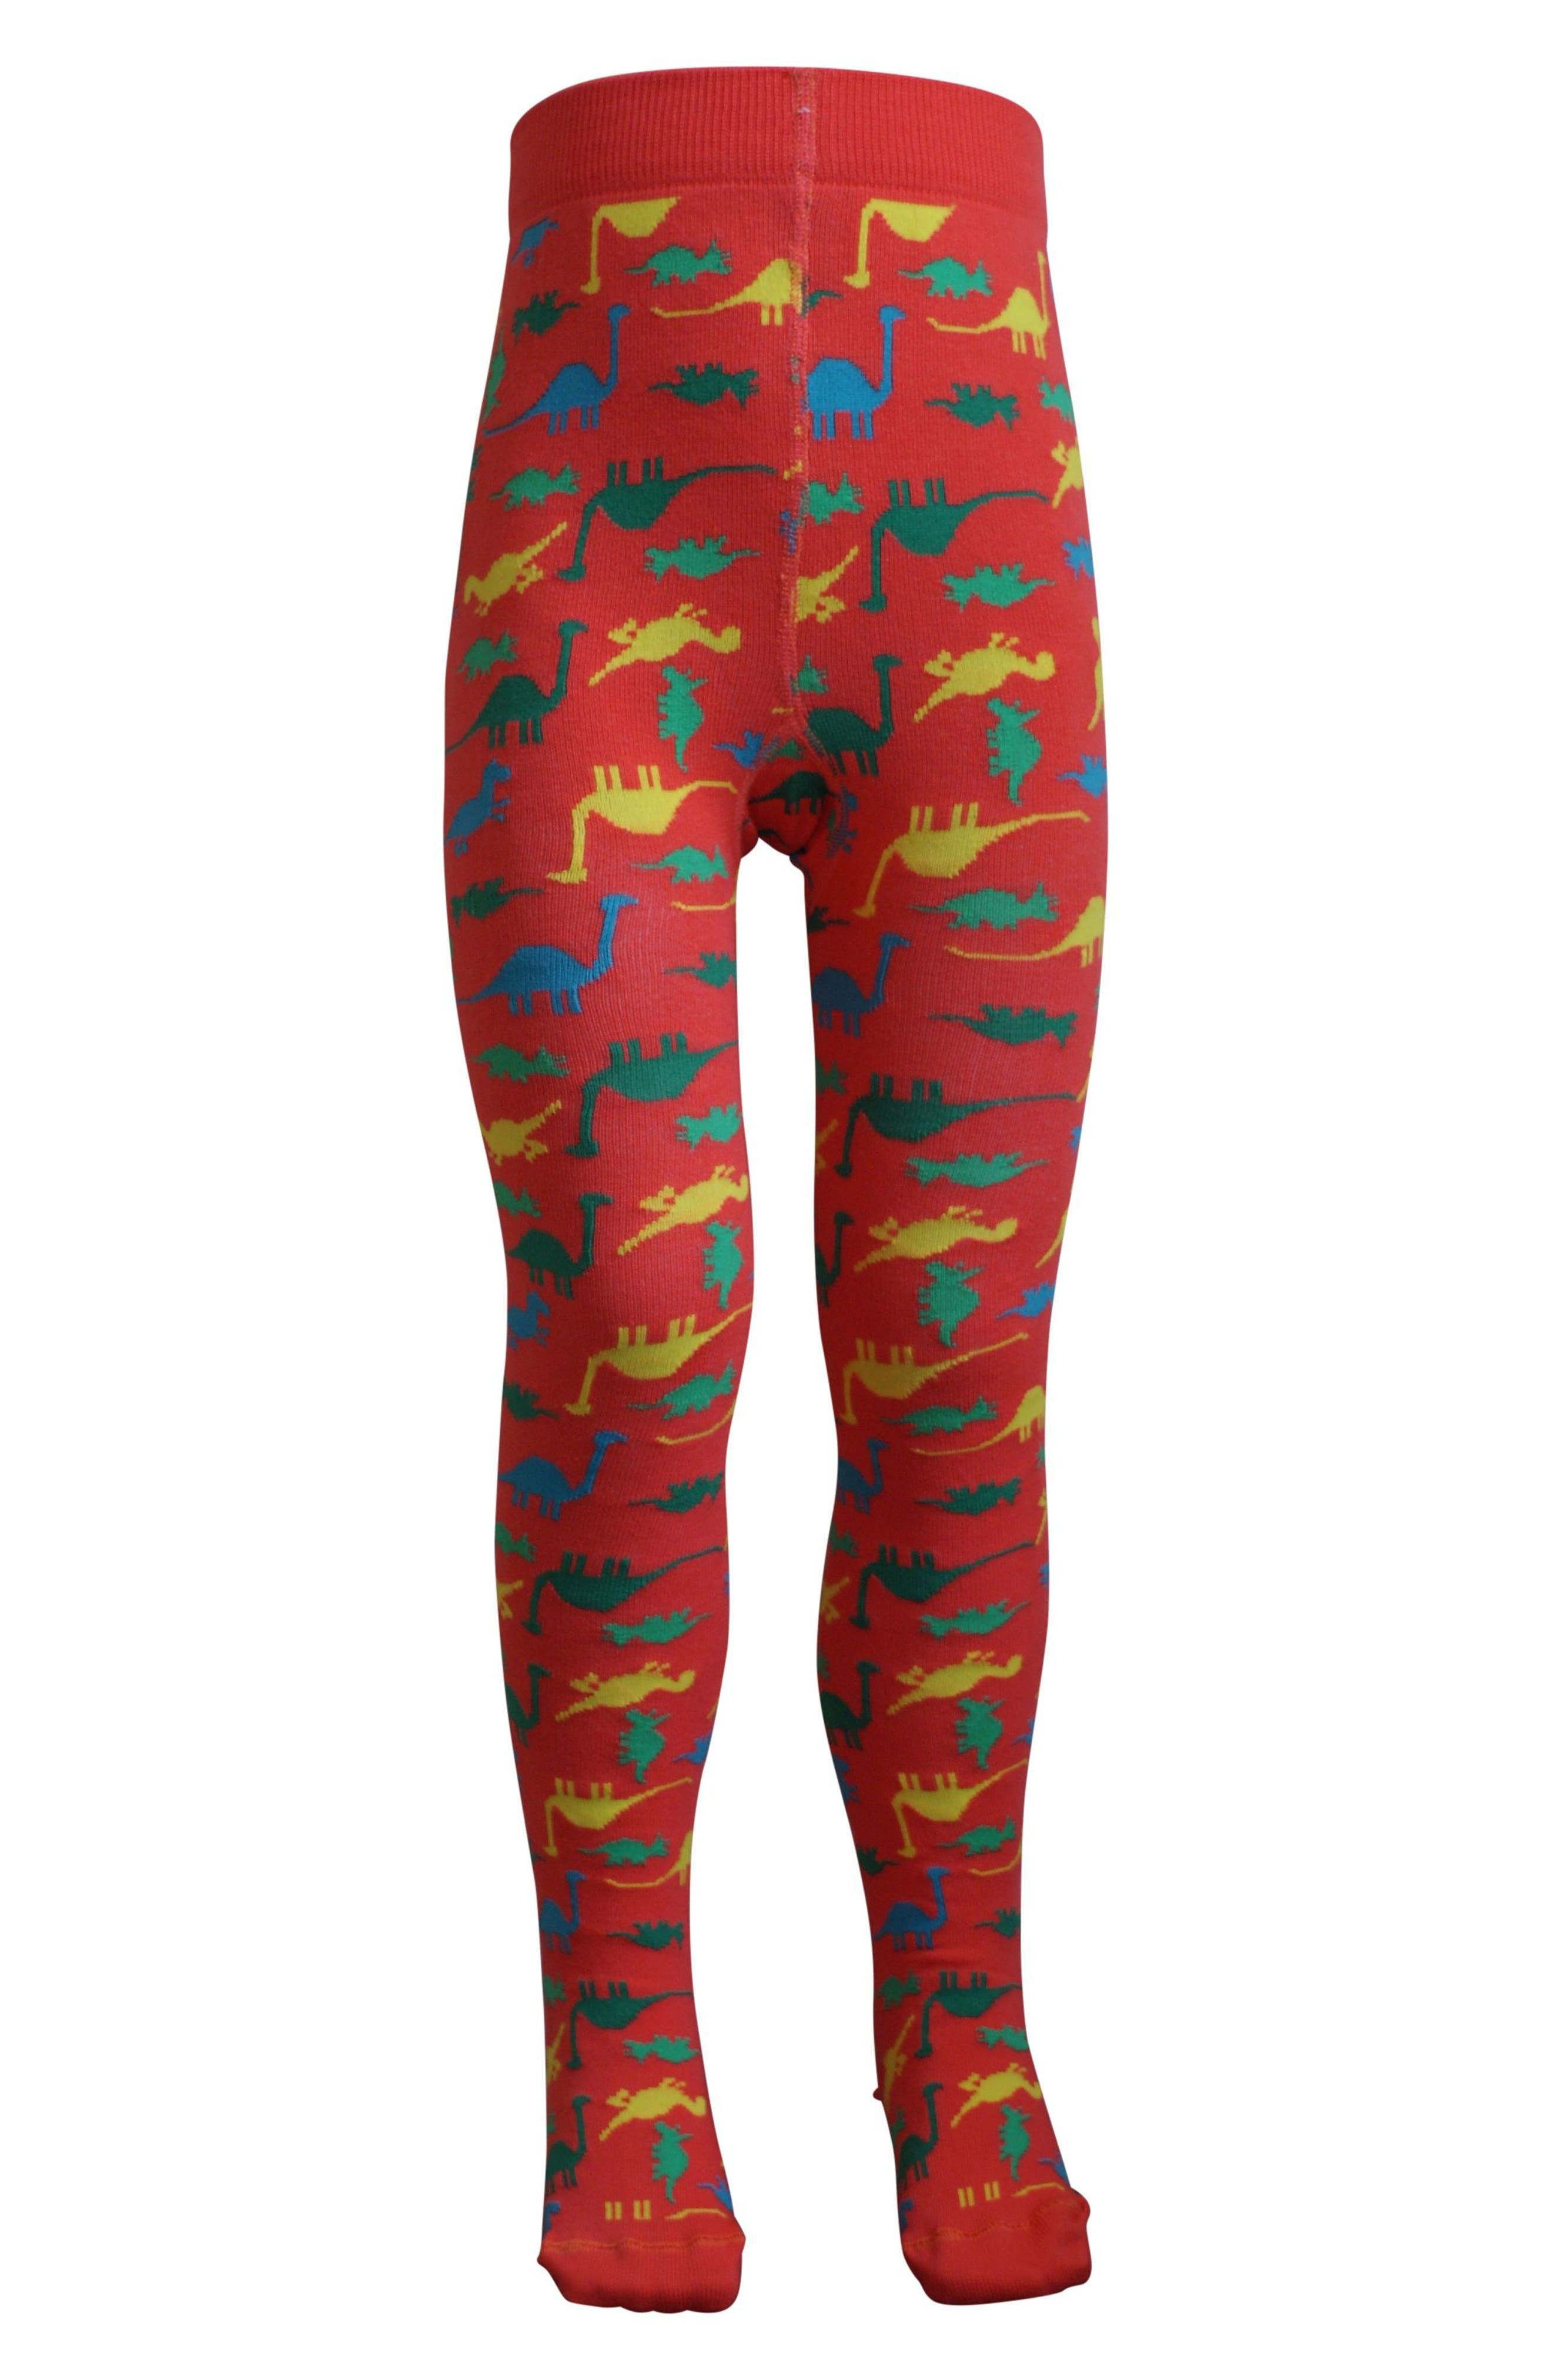 Dinosaur Tights,                         Main,                         color, Sunset Red